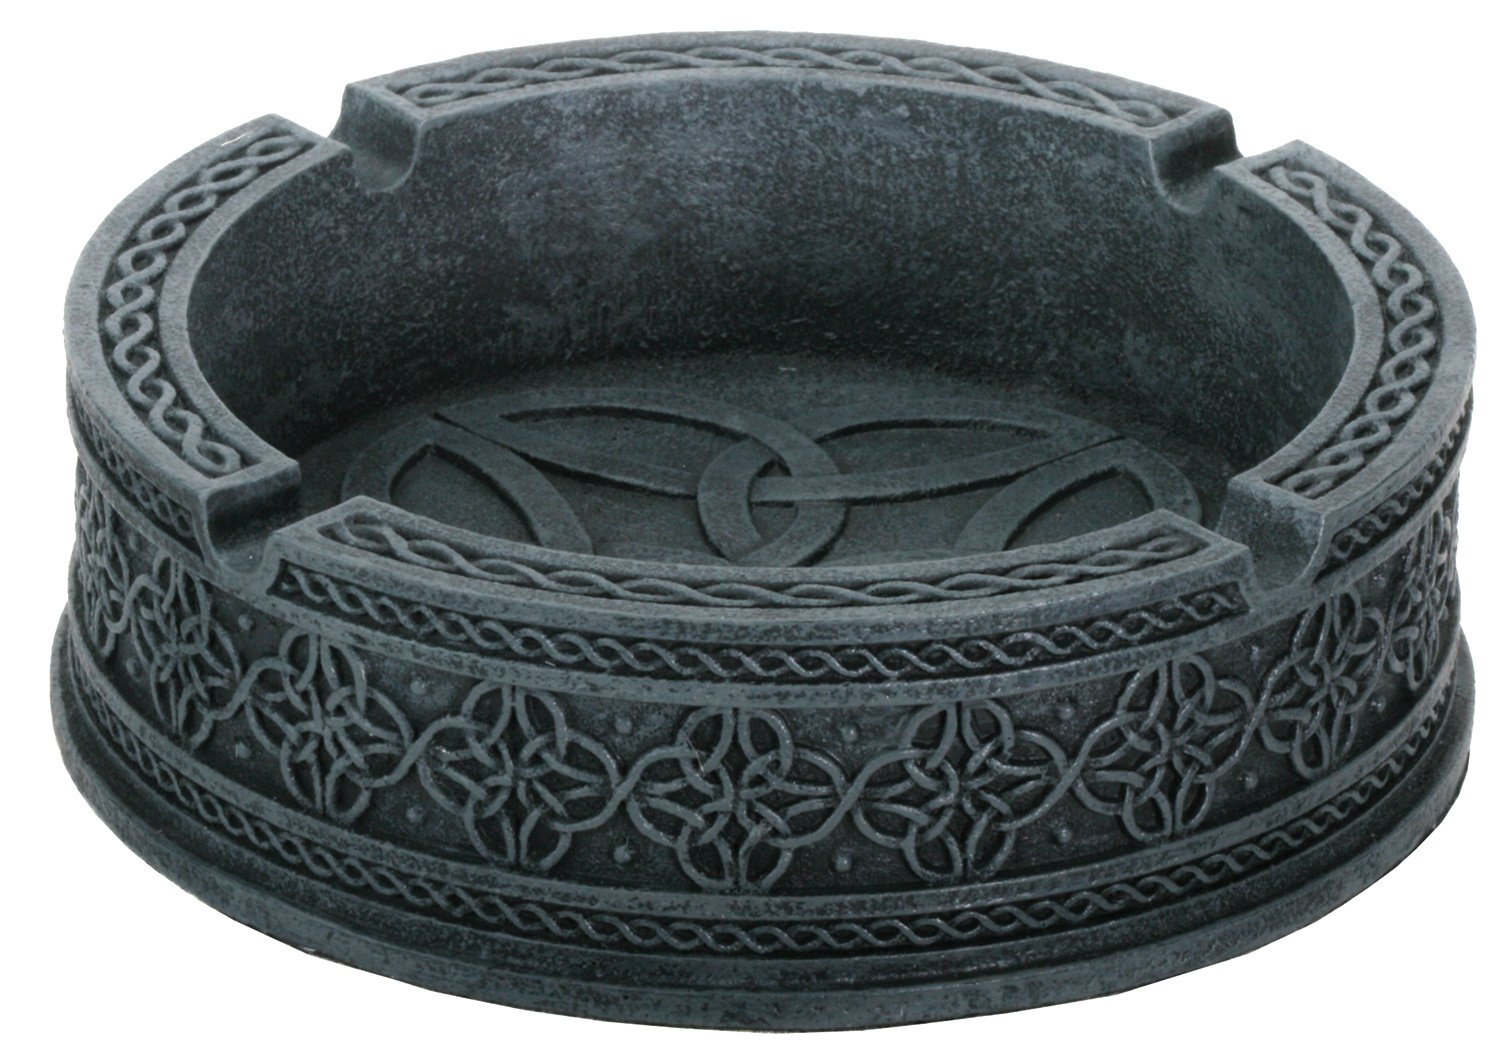 StealStreet Celtic Ashtray Smoke Collectible Tribal Decoration Statue